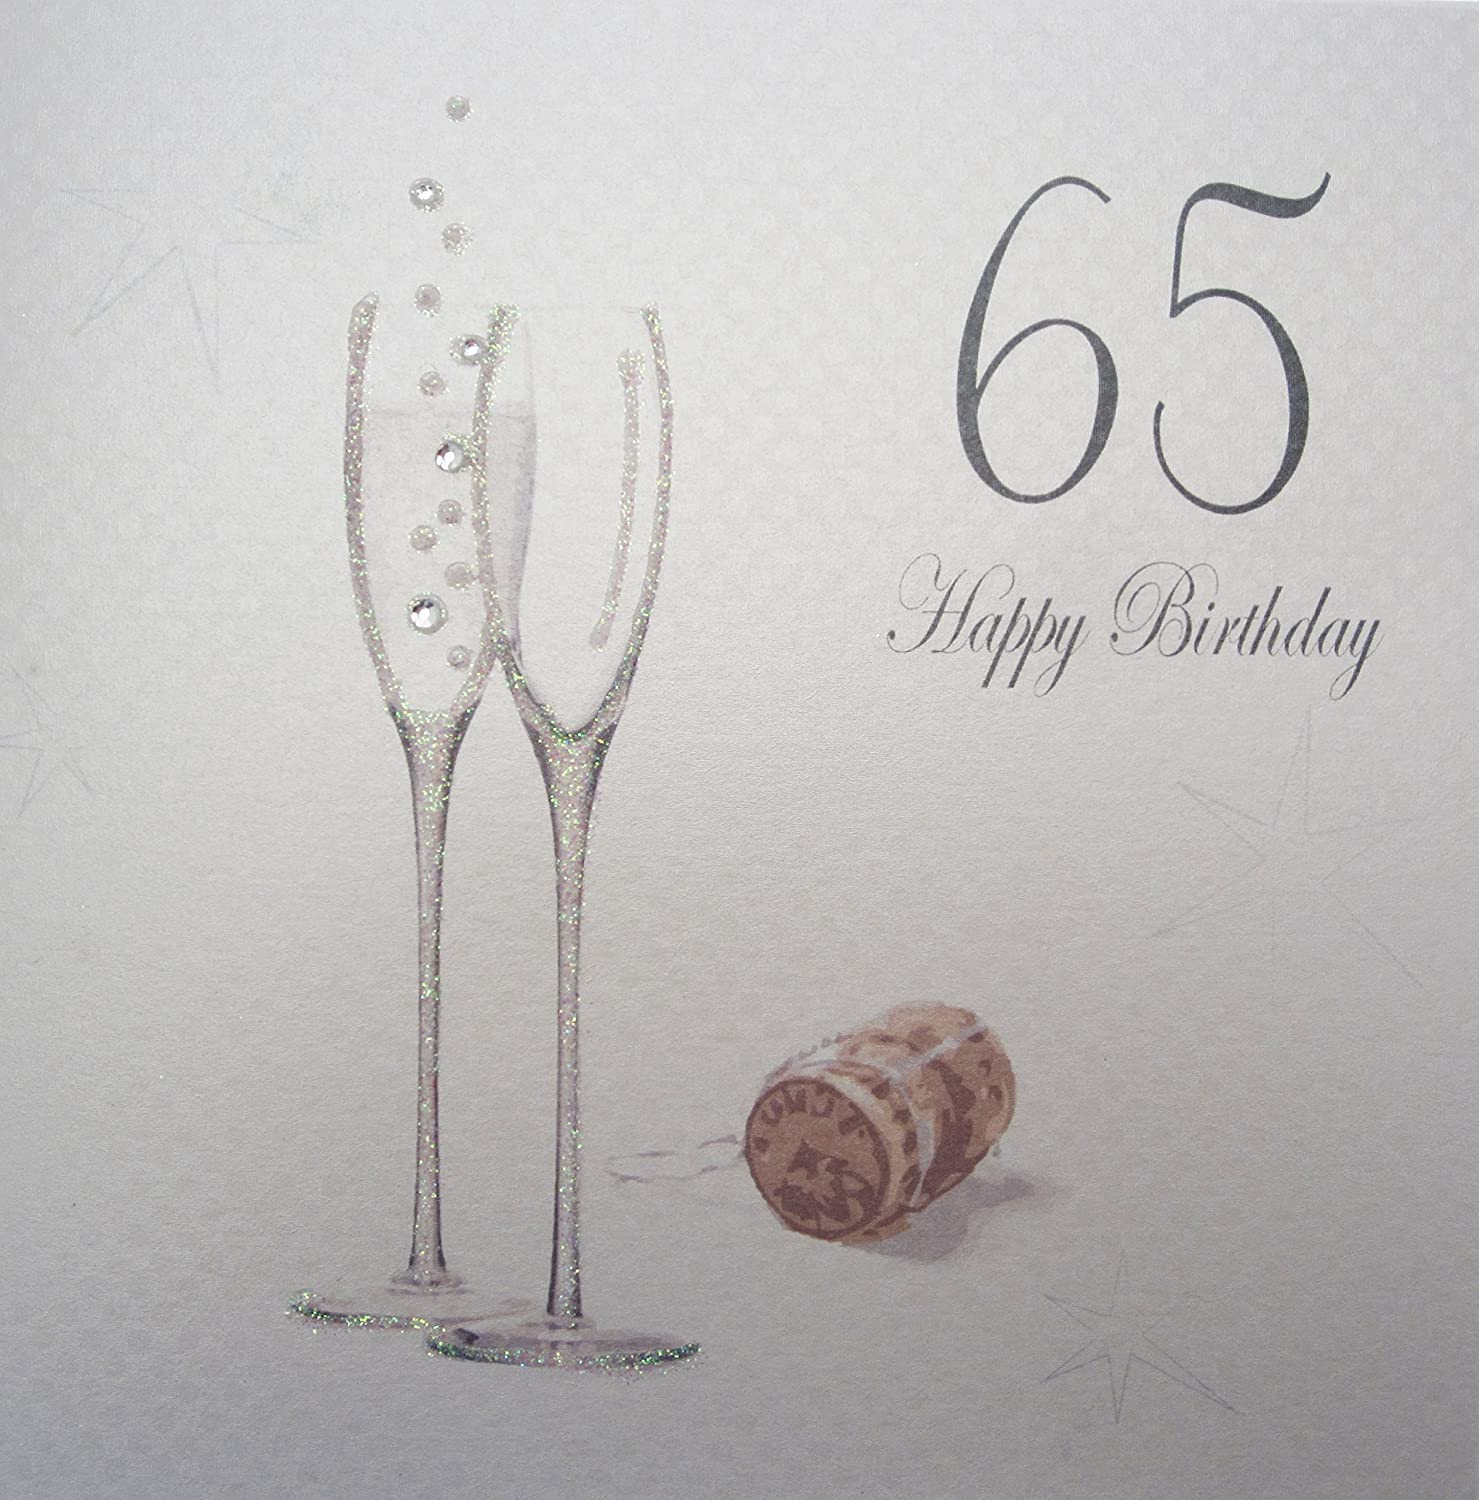 Amazon White Cotton Cards Champagne Flutes 65 Happy Birthday Handmade 65th Card Computers Accessories